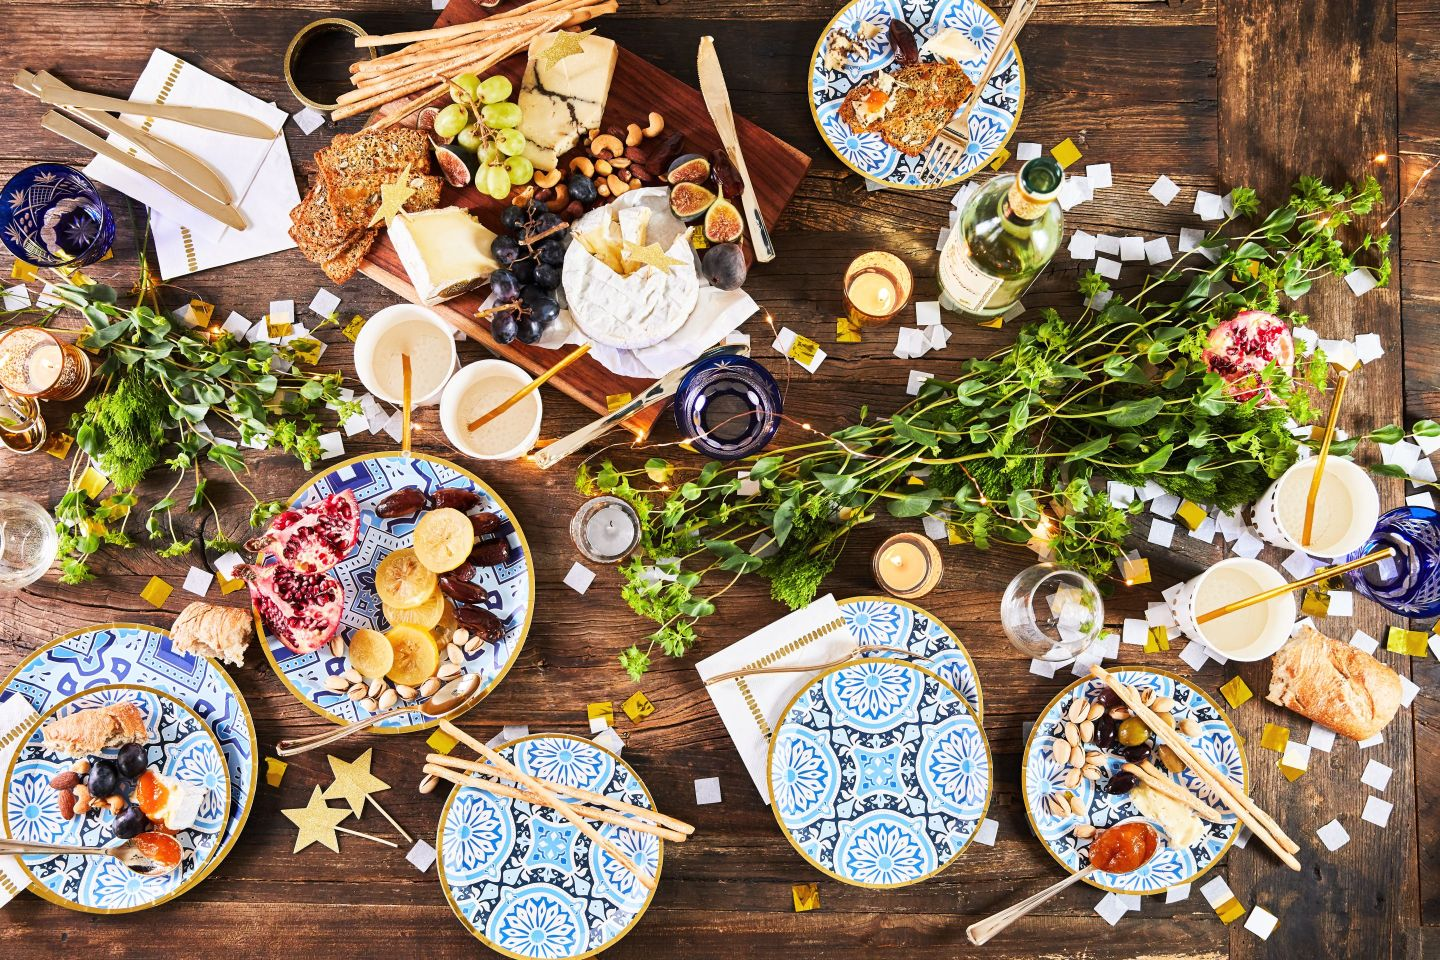 Coterie-Amalfi-1-1440x960 Easy Outdoor Summer Entertaining Tips from Co-Founders of Coterie